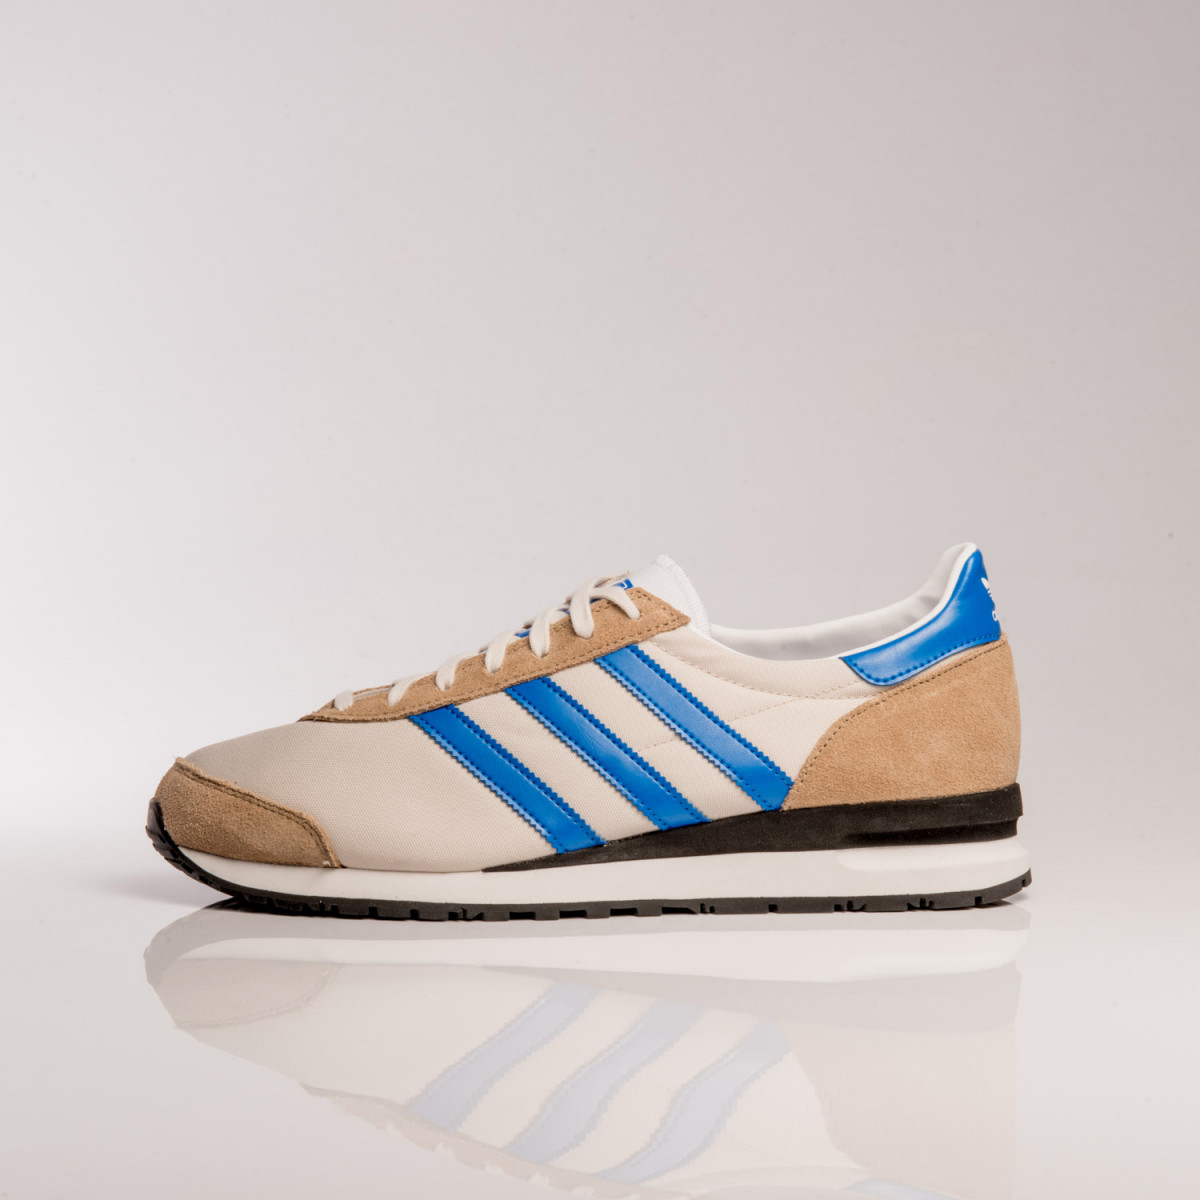 ZAPATILLAS ADIDAS OR MARATHON 85